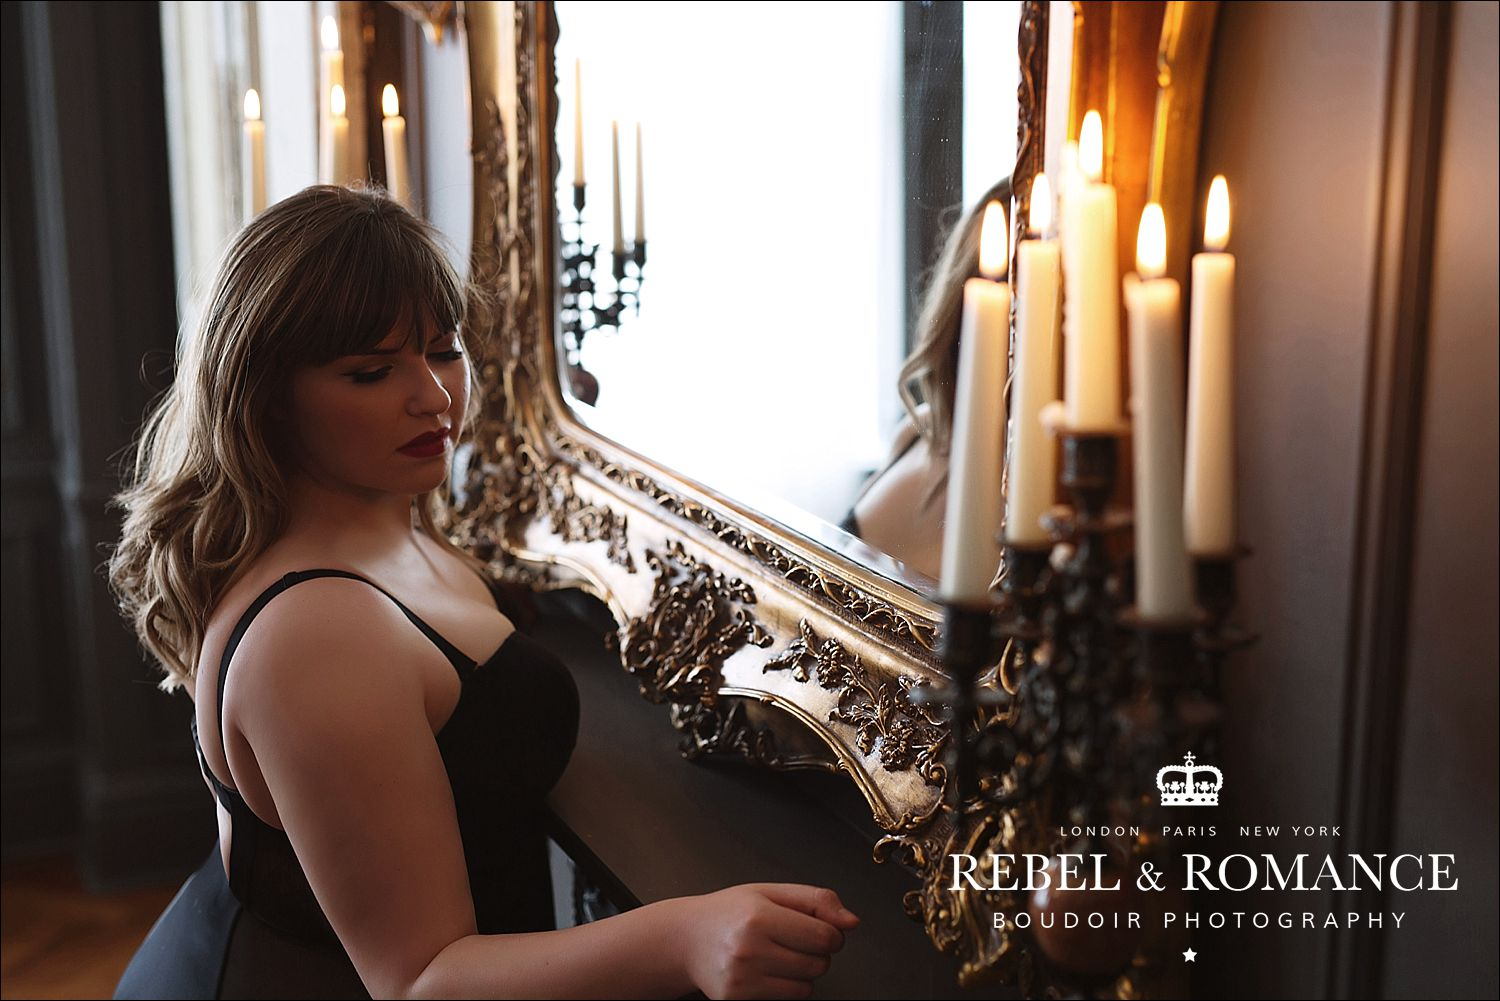 59cc9fe4eb7 plus size woman in front of mirror and candles